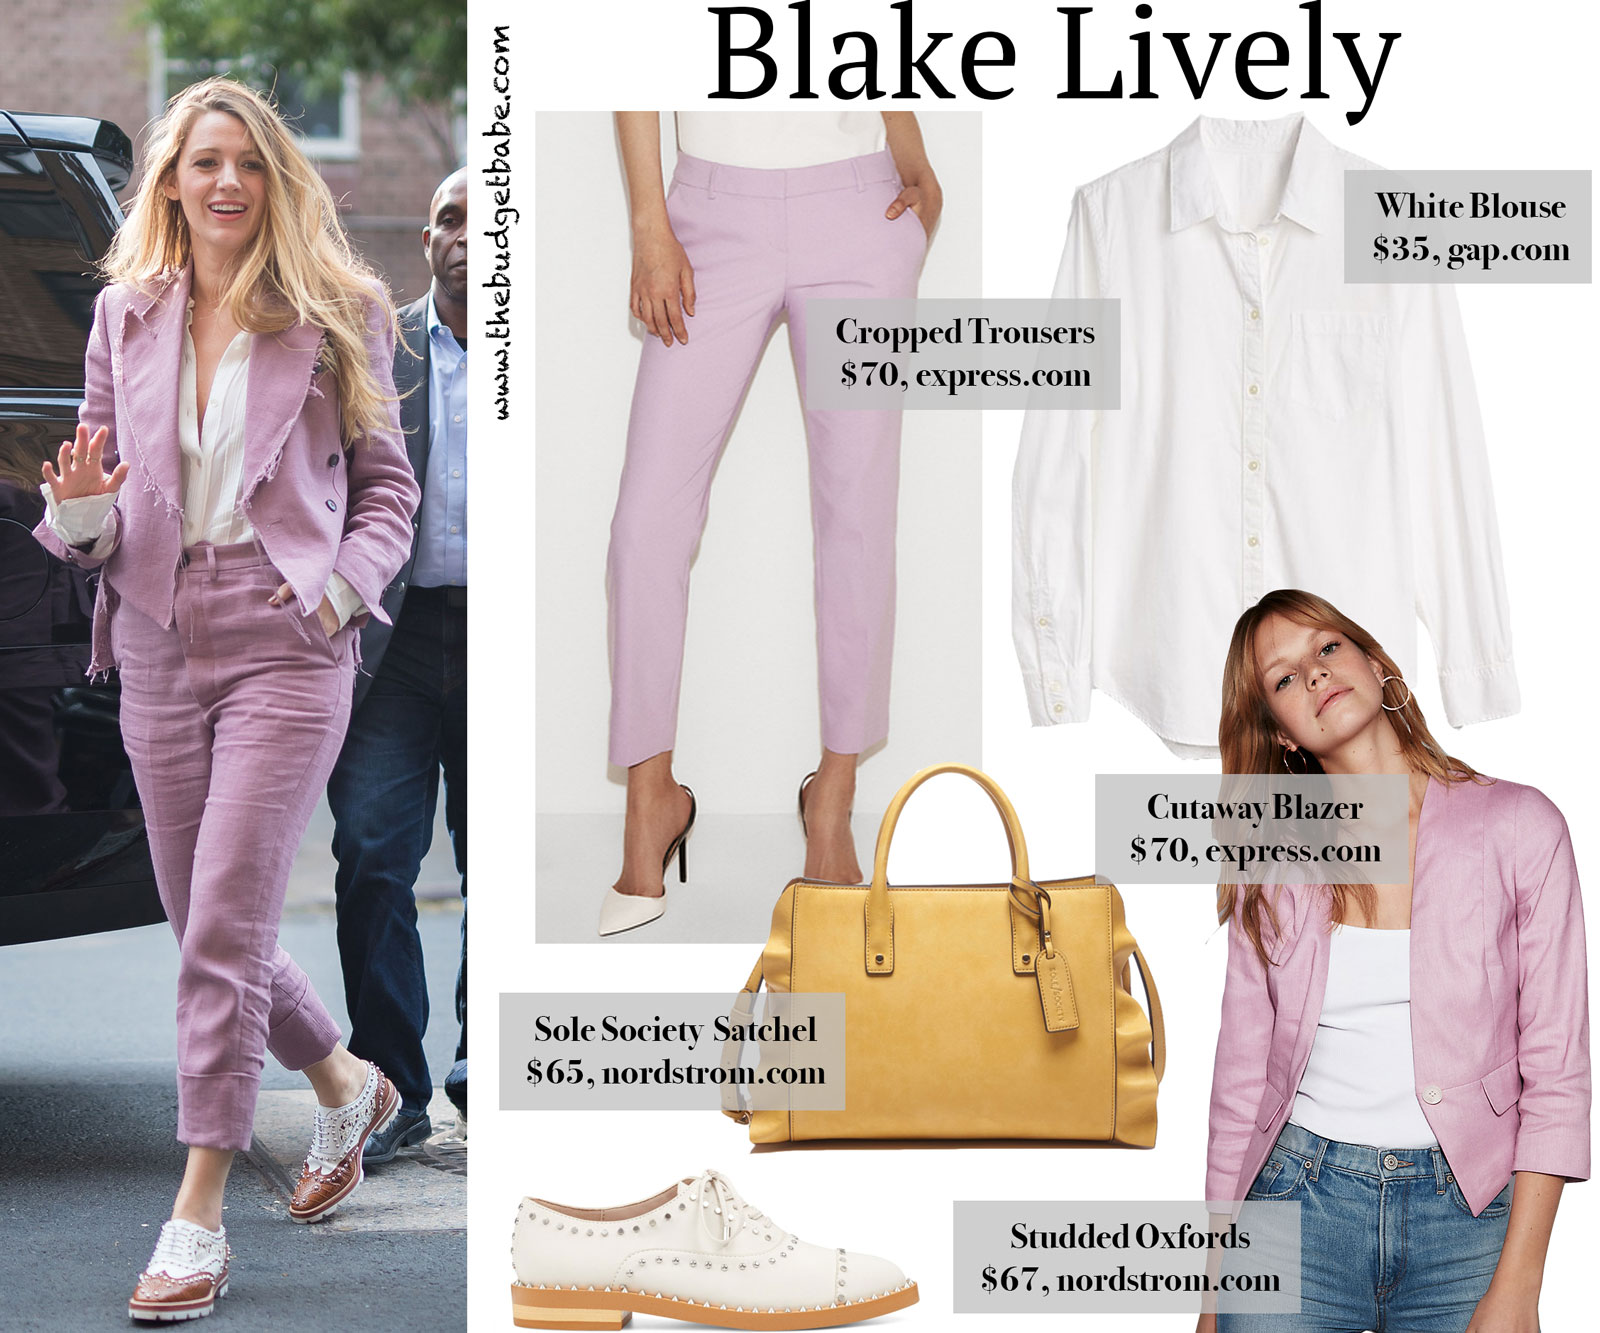 Blake Lively Mauve Jacket and Trousers Look for Less